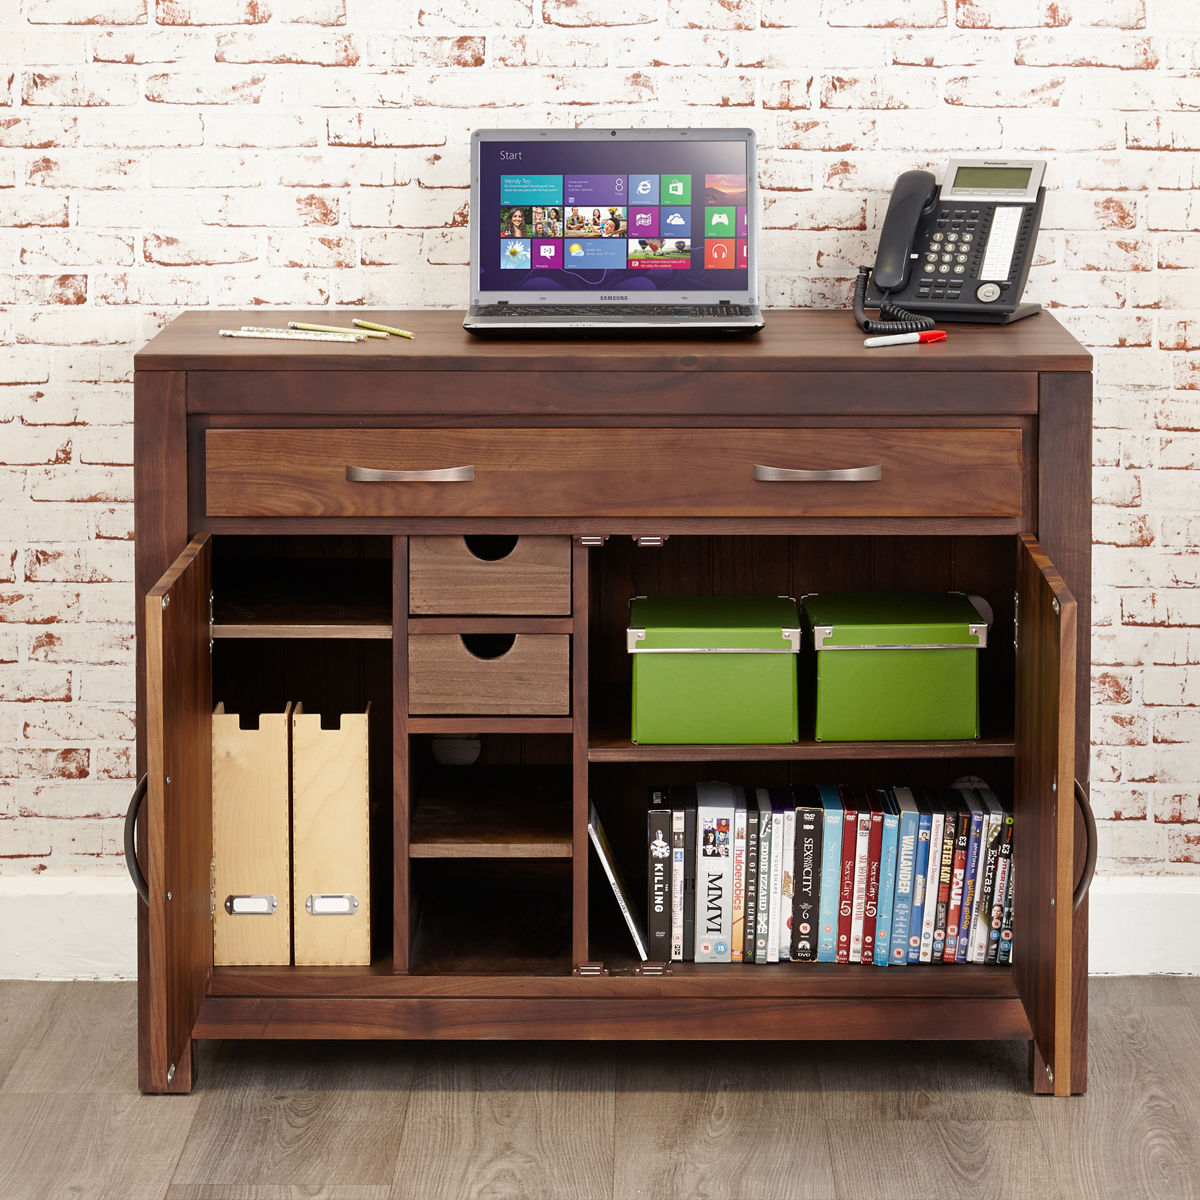 Mayan Walnut Hidden Home Office Wooden Furniture Store